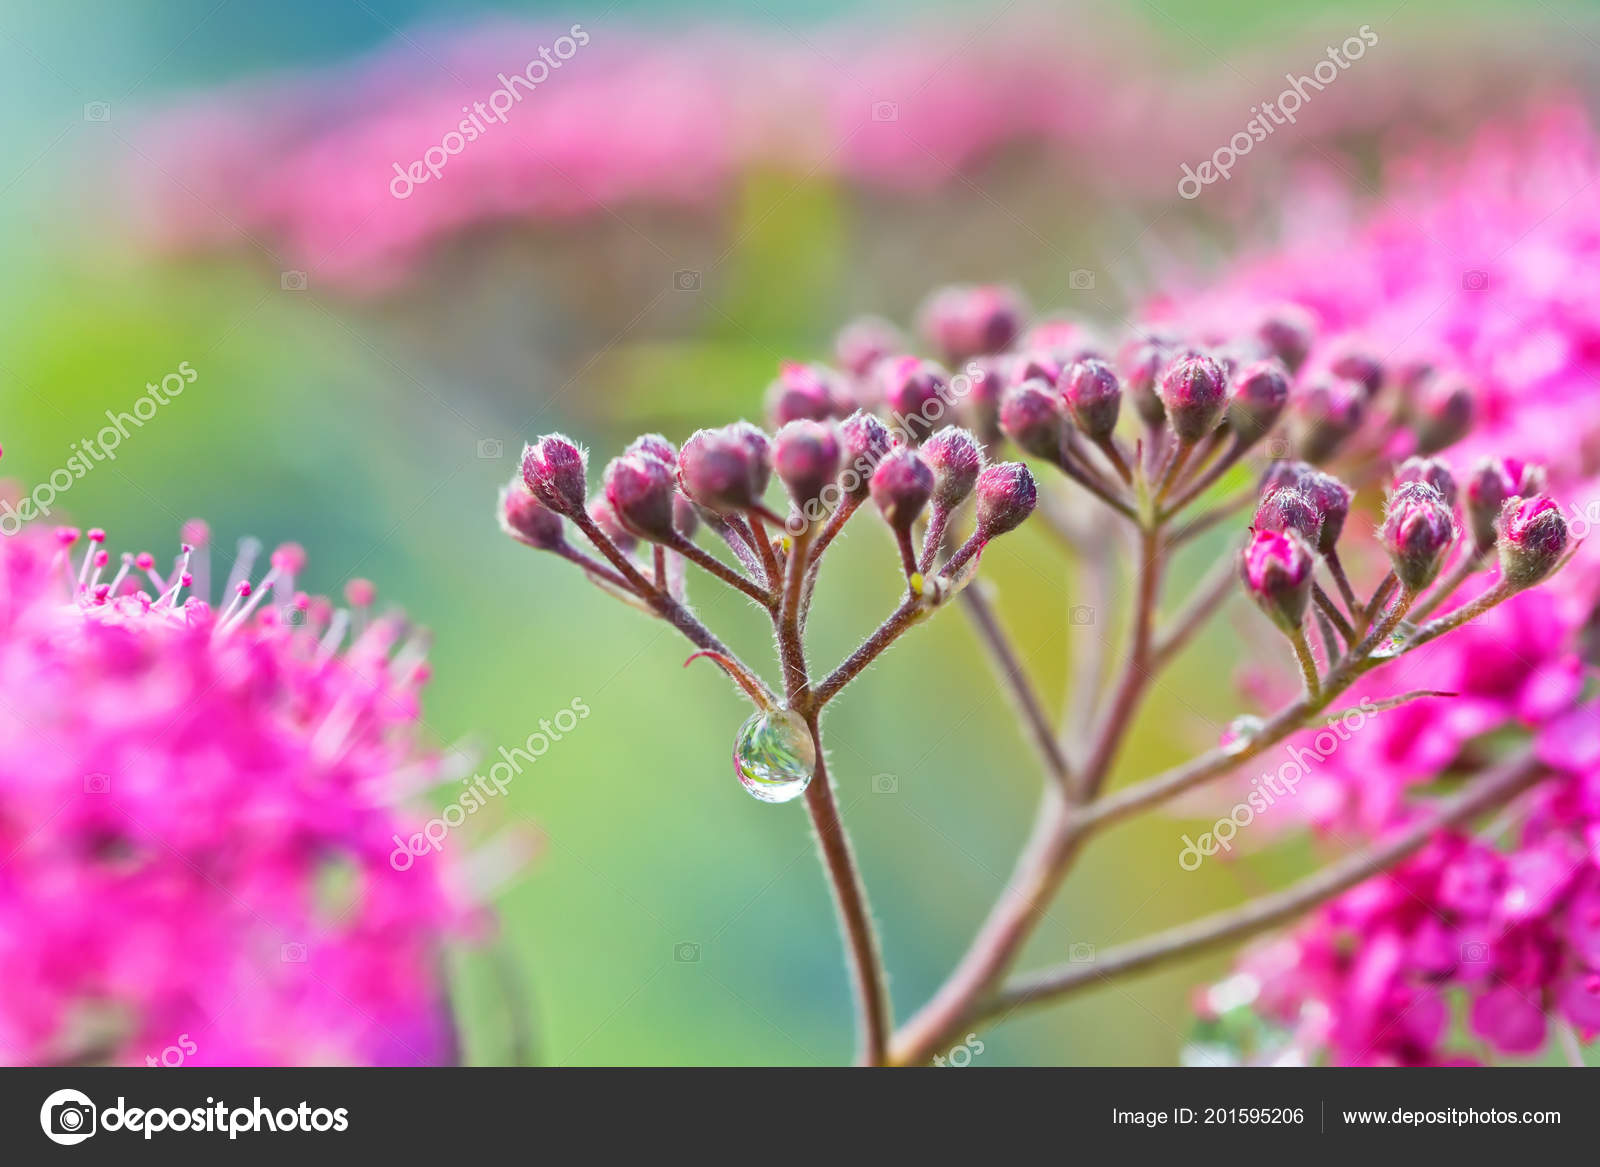 Small decorative pink flowers long stamens dew drops stems rain small decorative pink flowers long stamens dew drops stems rain stock photo mightylinksfo